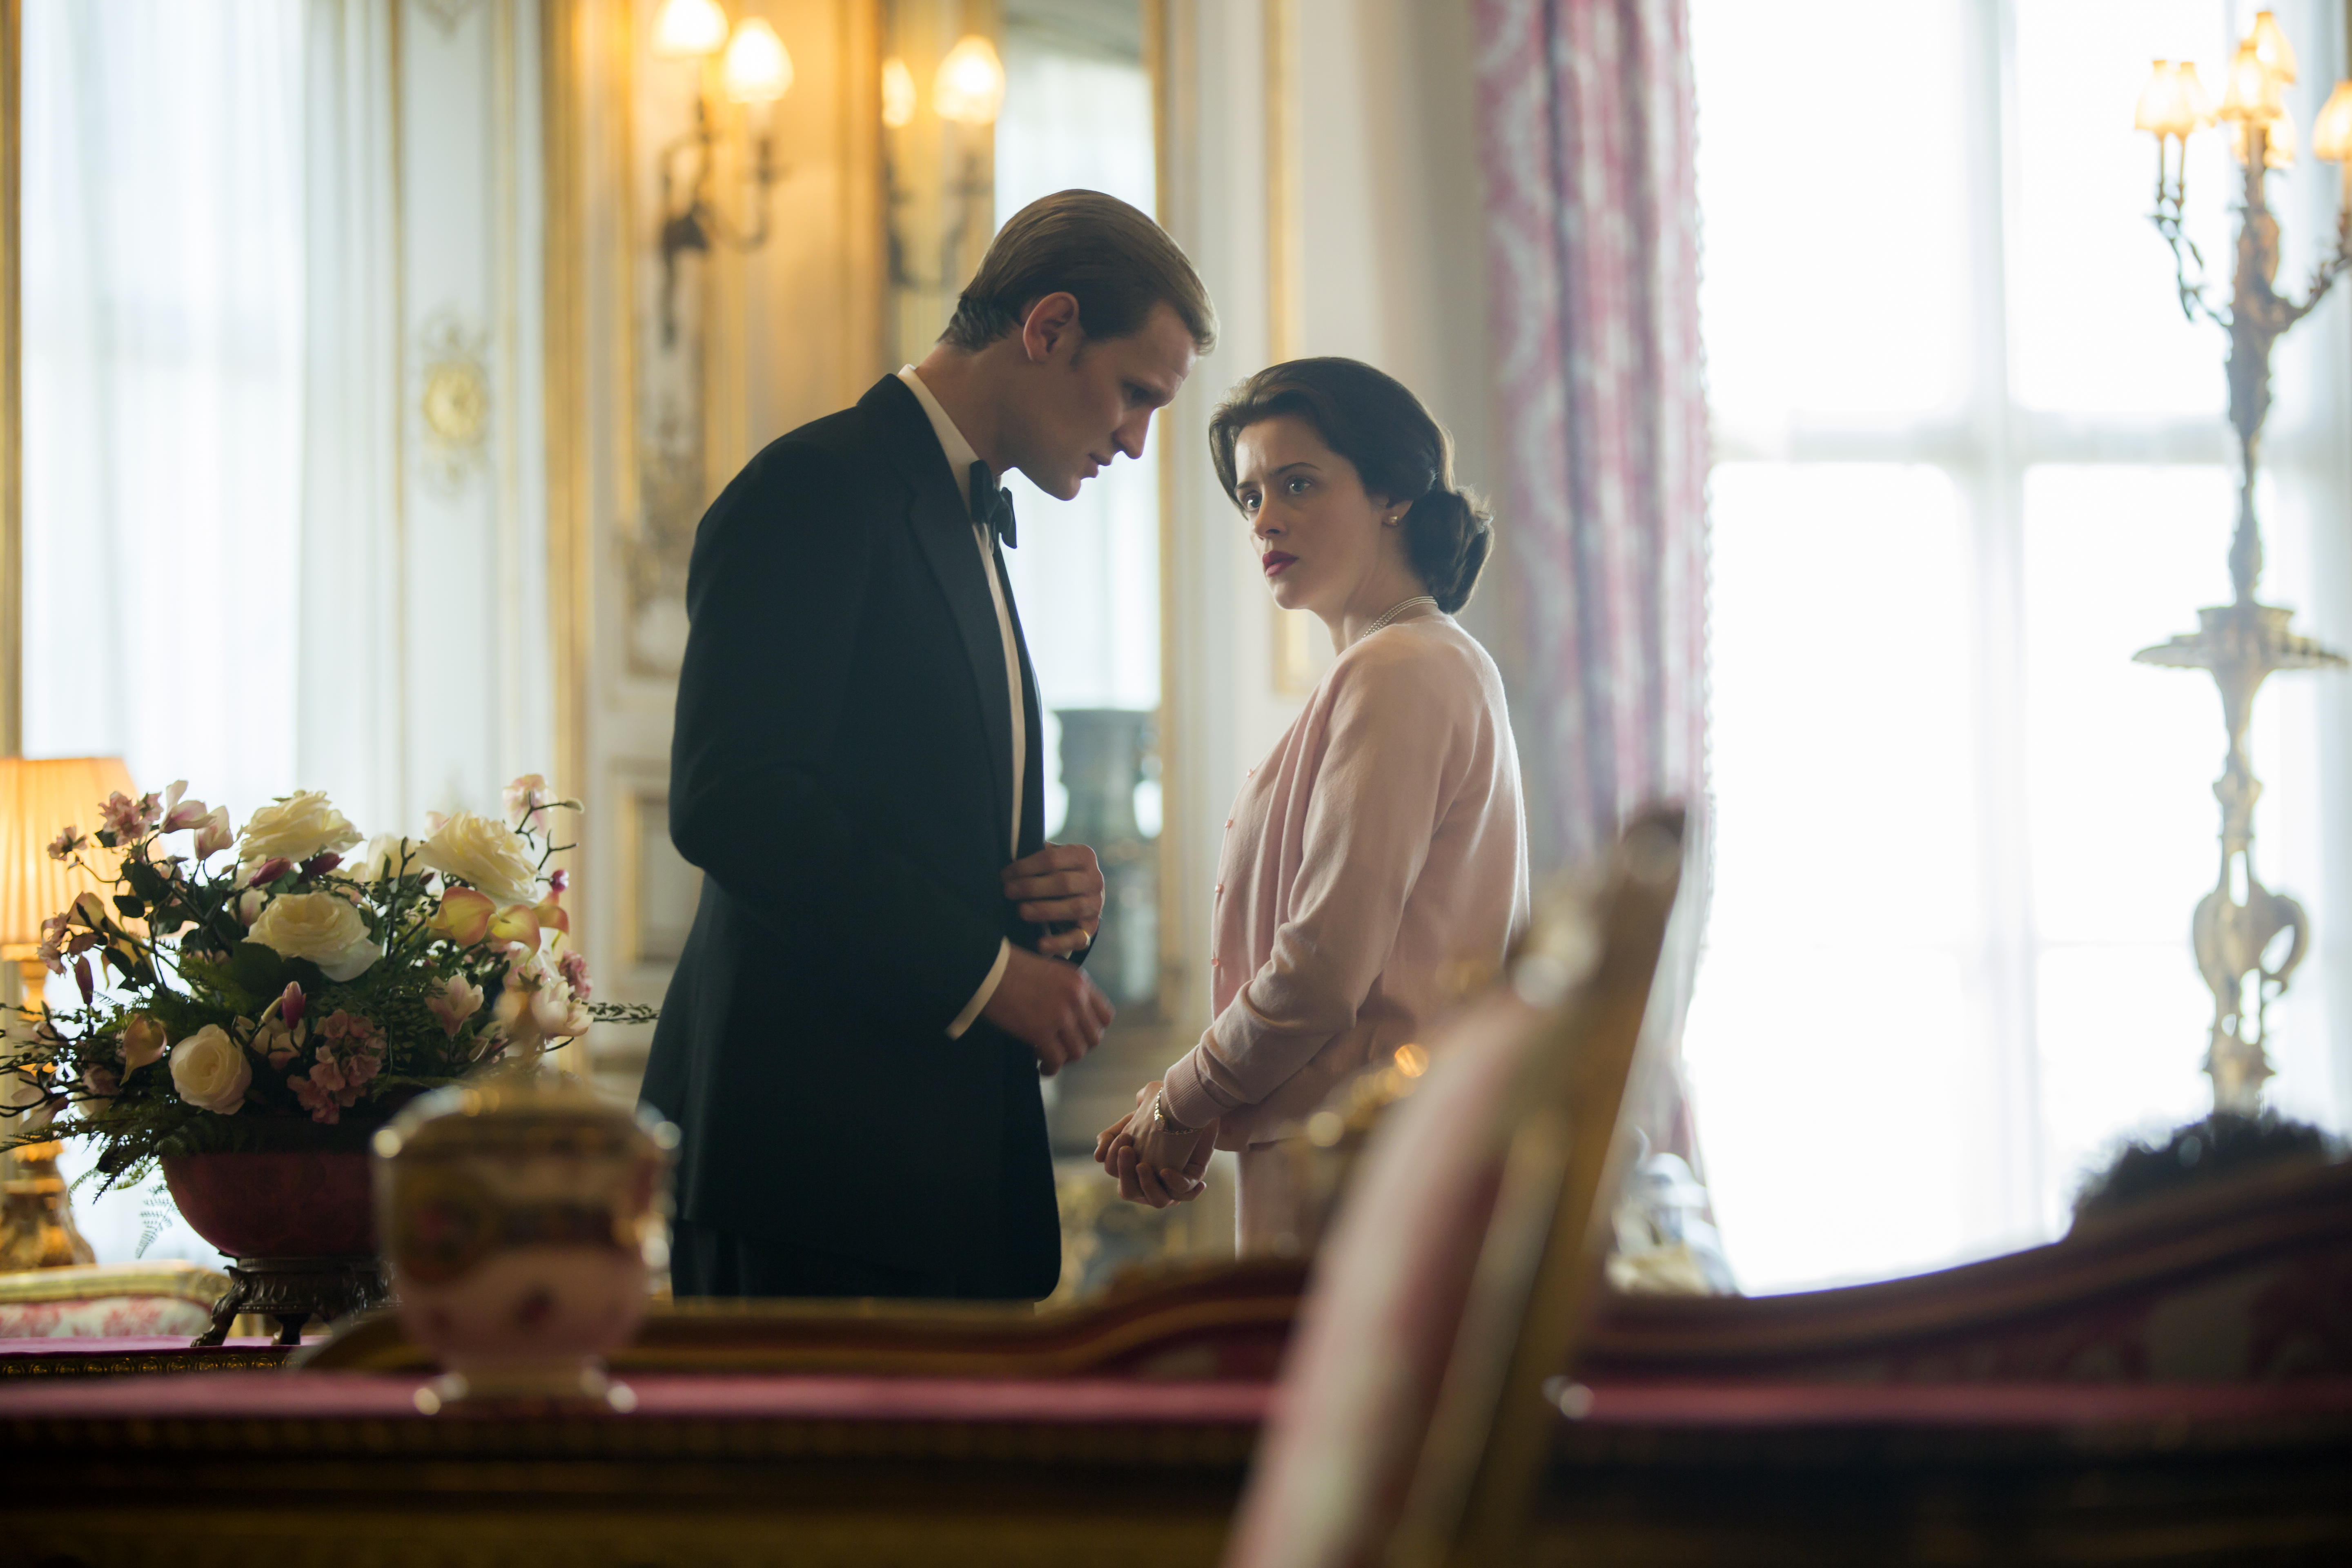 The Crown season 3 first look offers our first glimpse of Helena Bonham Carter as Princess Margaret taking over from Vanessa Kirby